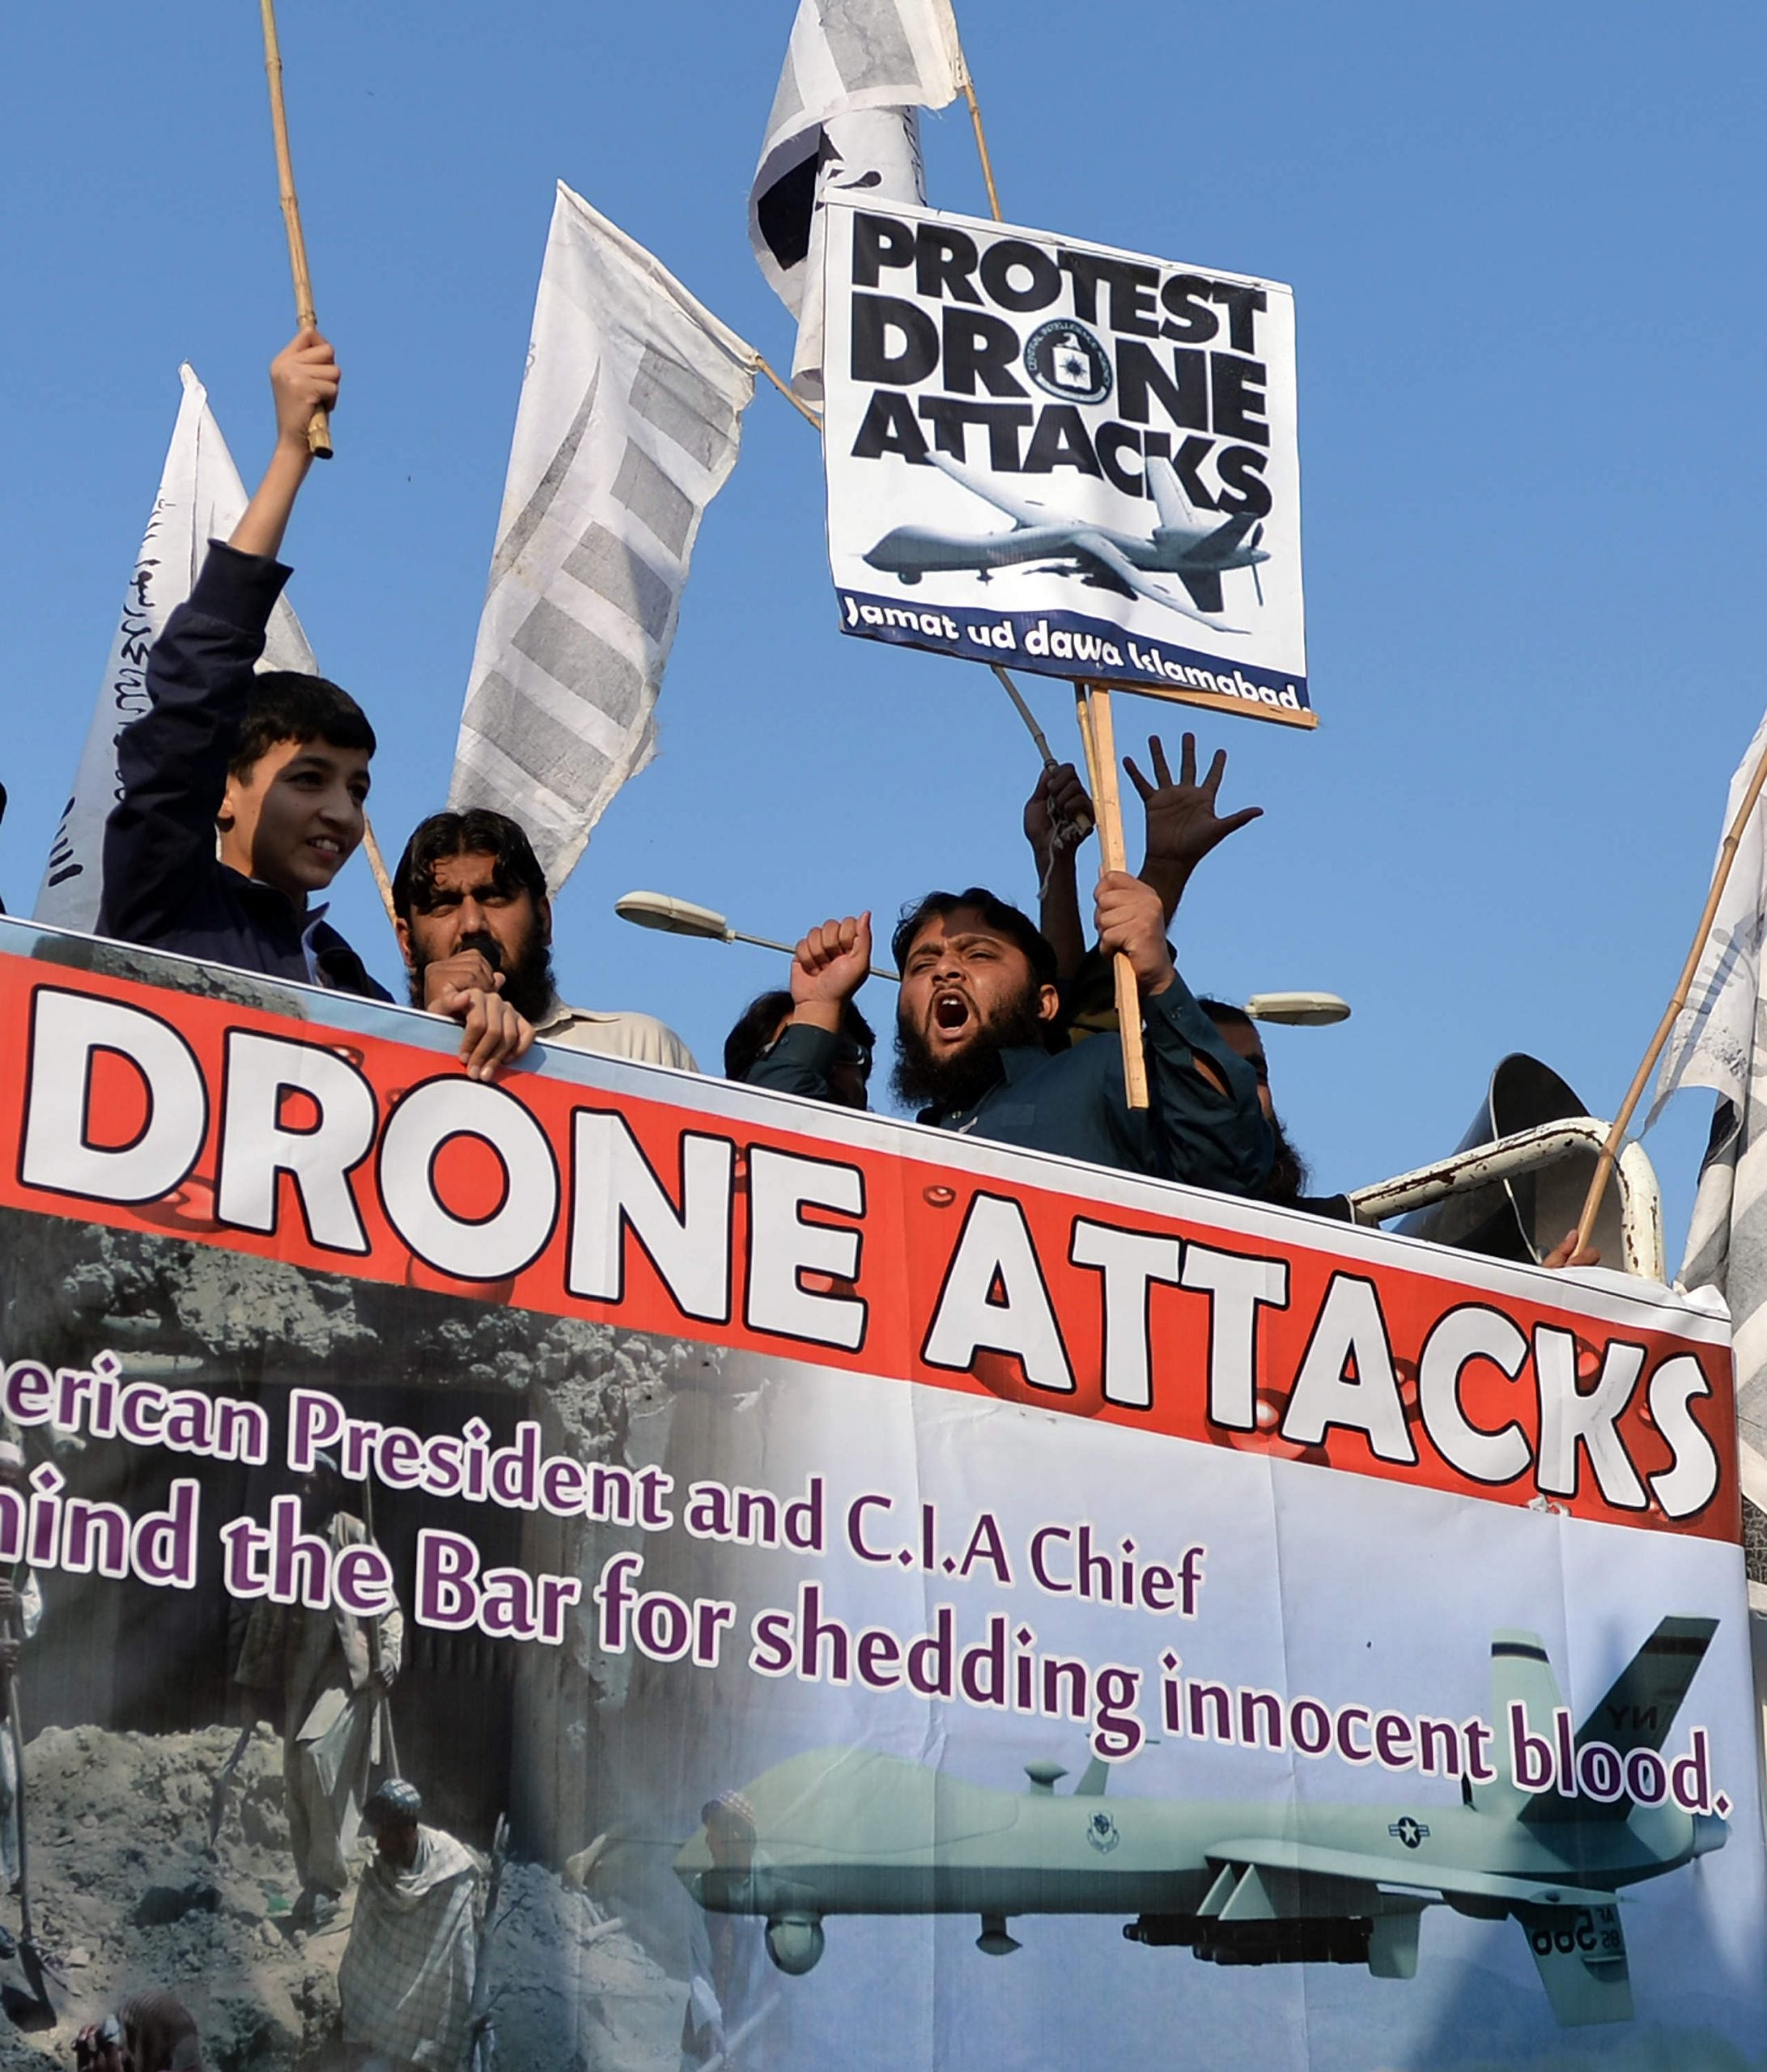 Eyes in the sky: the legal and philosophical implications of drone warfare